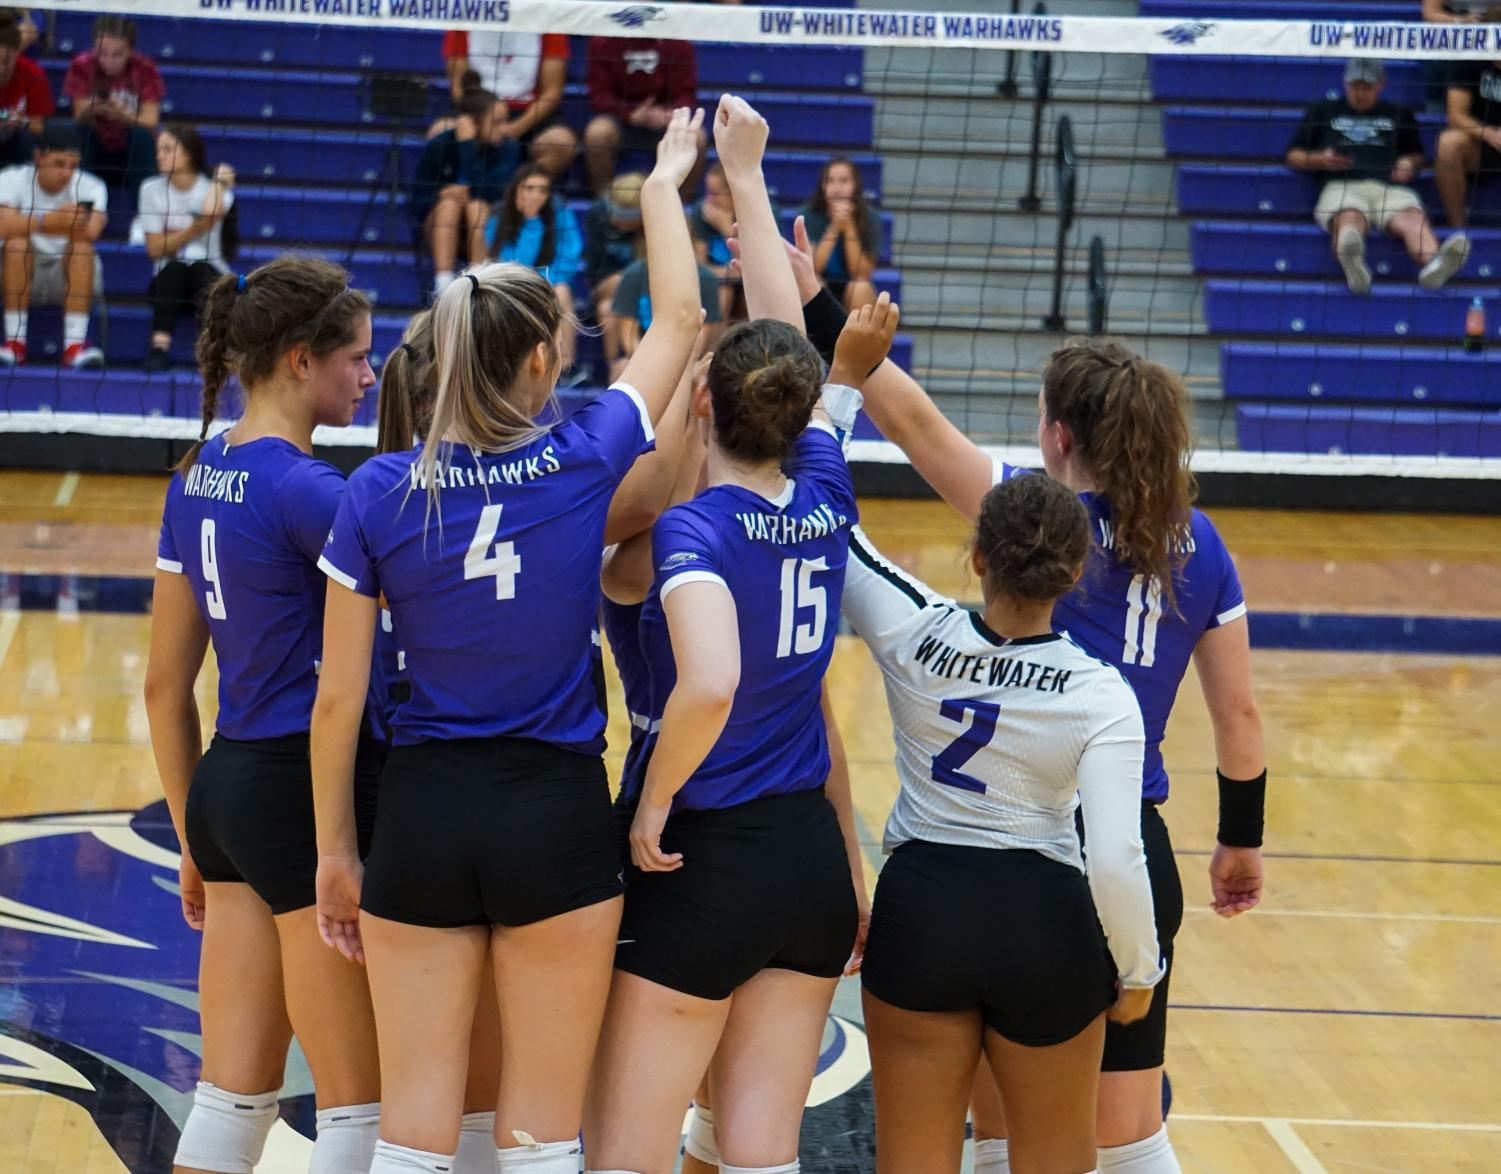 The Warhawks huddle before preparing for their match against Elmhurst College (Ill.) Sept. 11. Whitewater defeated the Blue Jays in three consecutive games 25-16, 25-15 and 27-25.